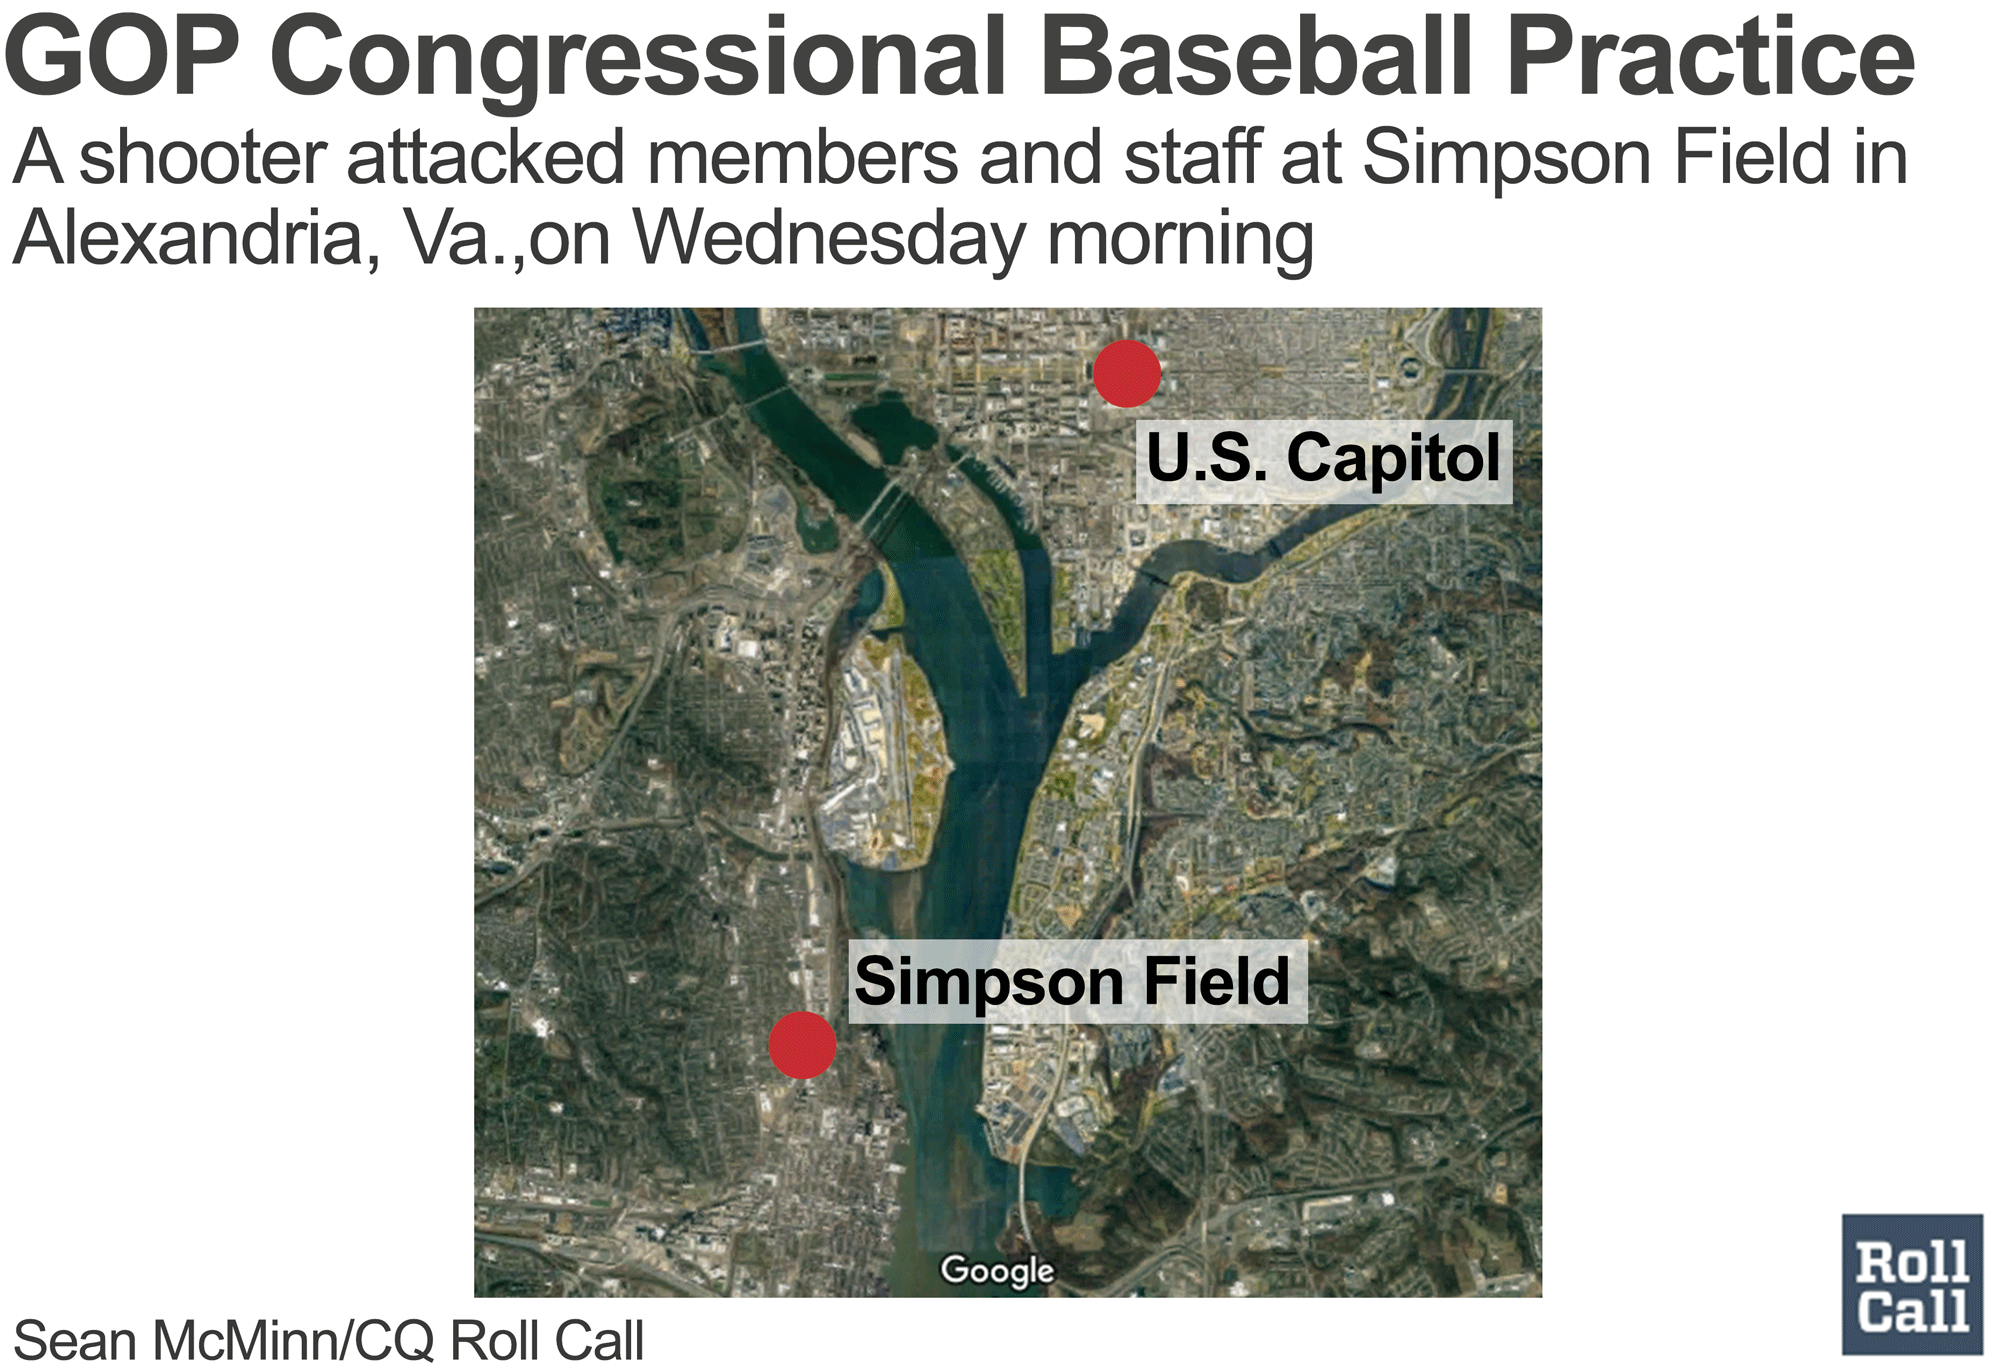 Congressional ball game an act of unity and defiance of violence